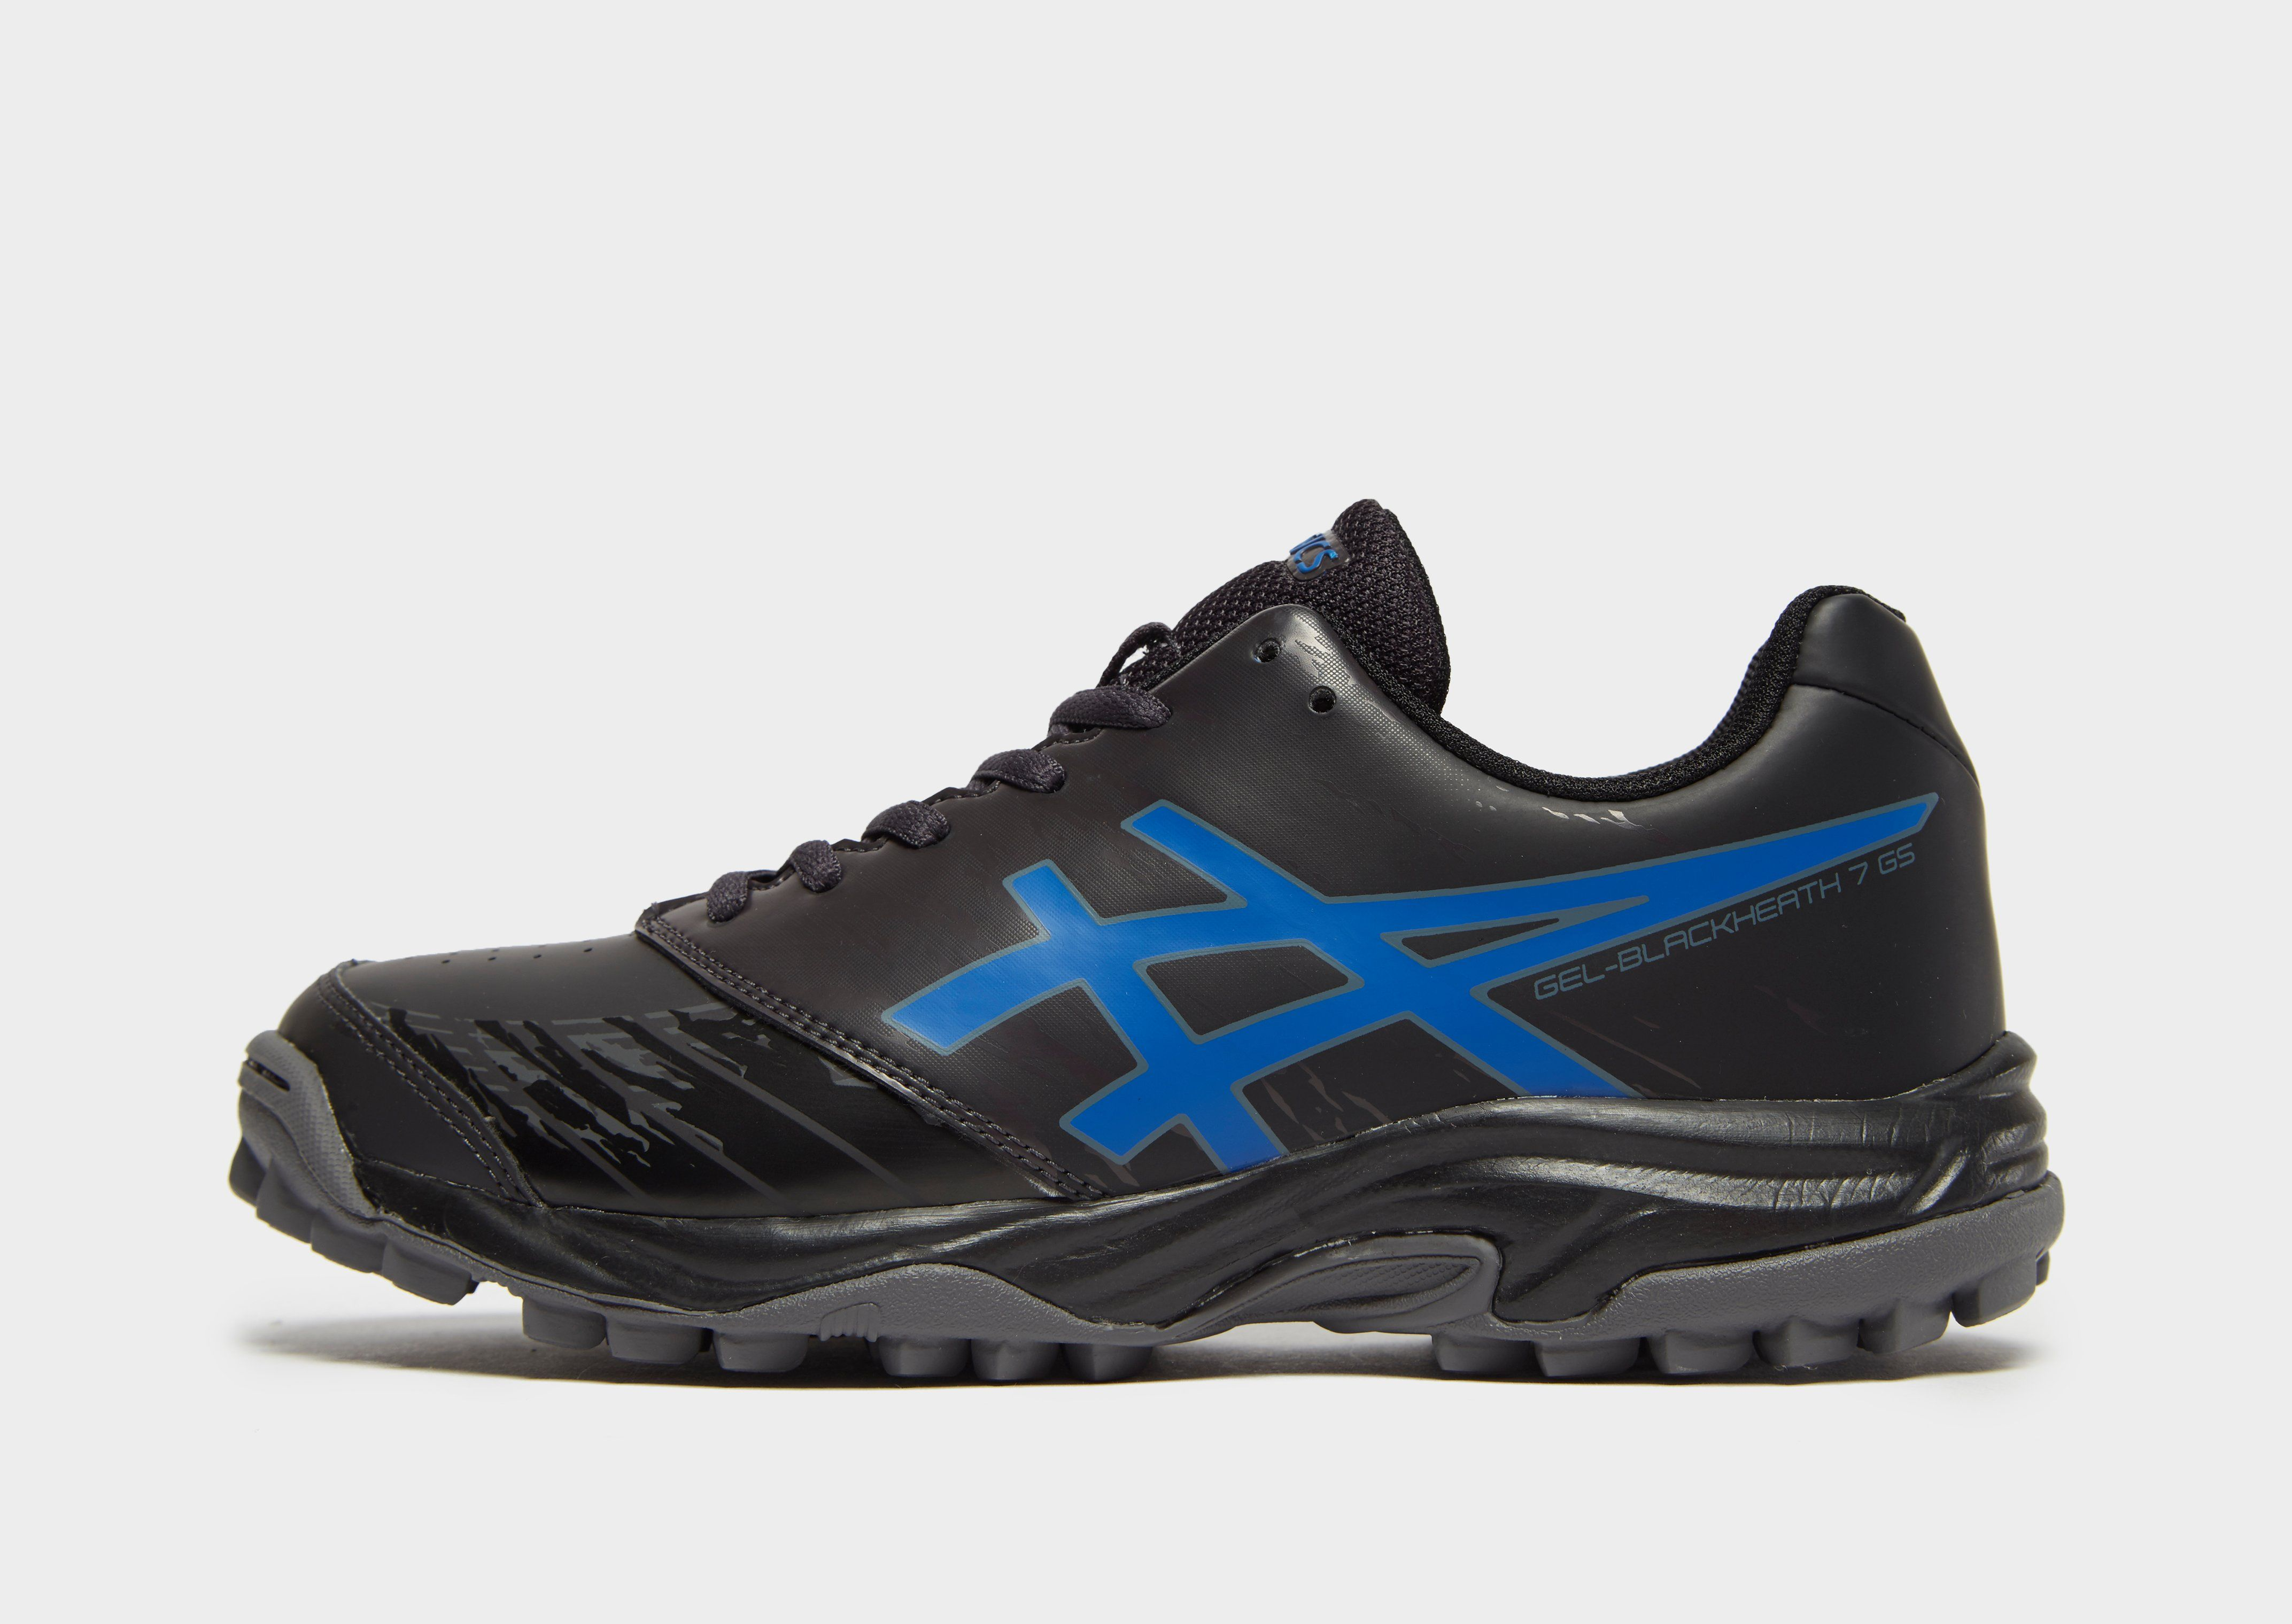 6b1696d72fe ASICS Gel-Blackheath 7 Hockey Shoes Junior | JD Sports